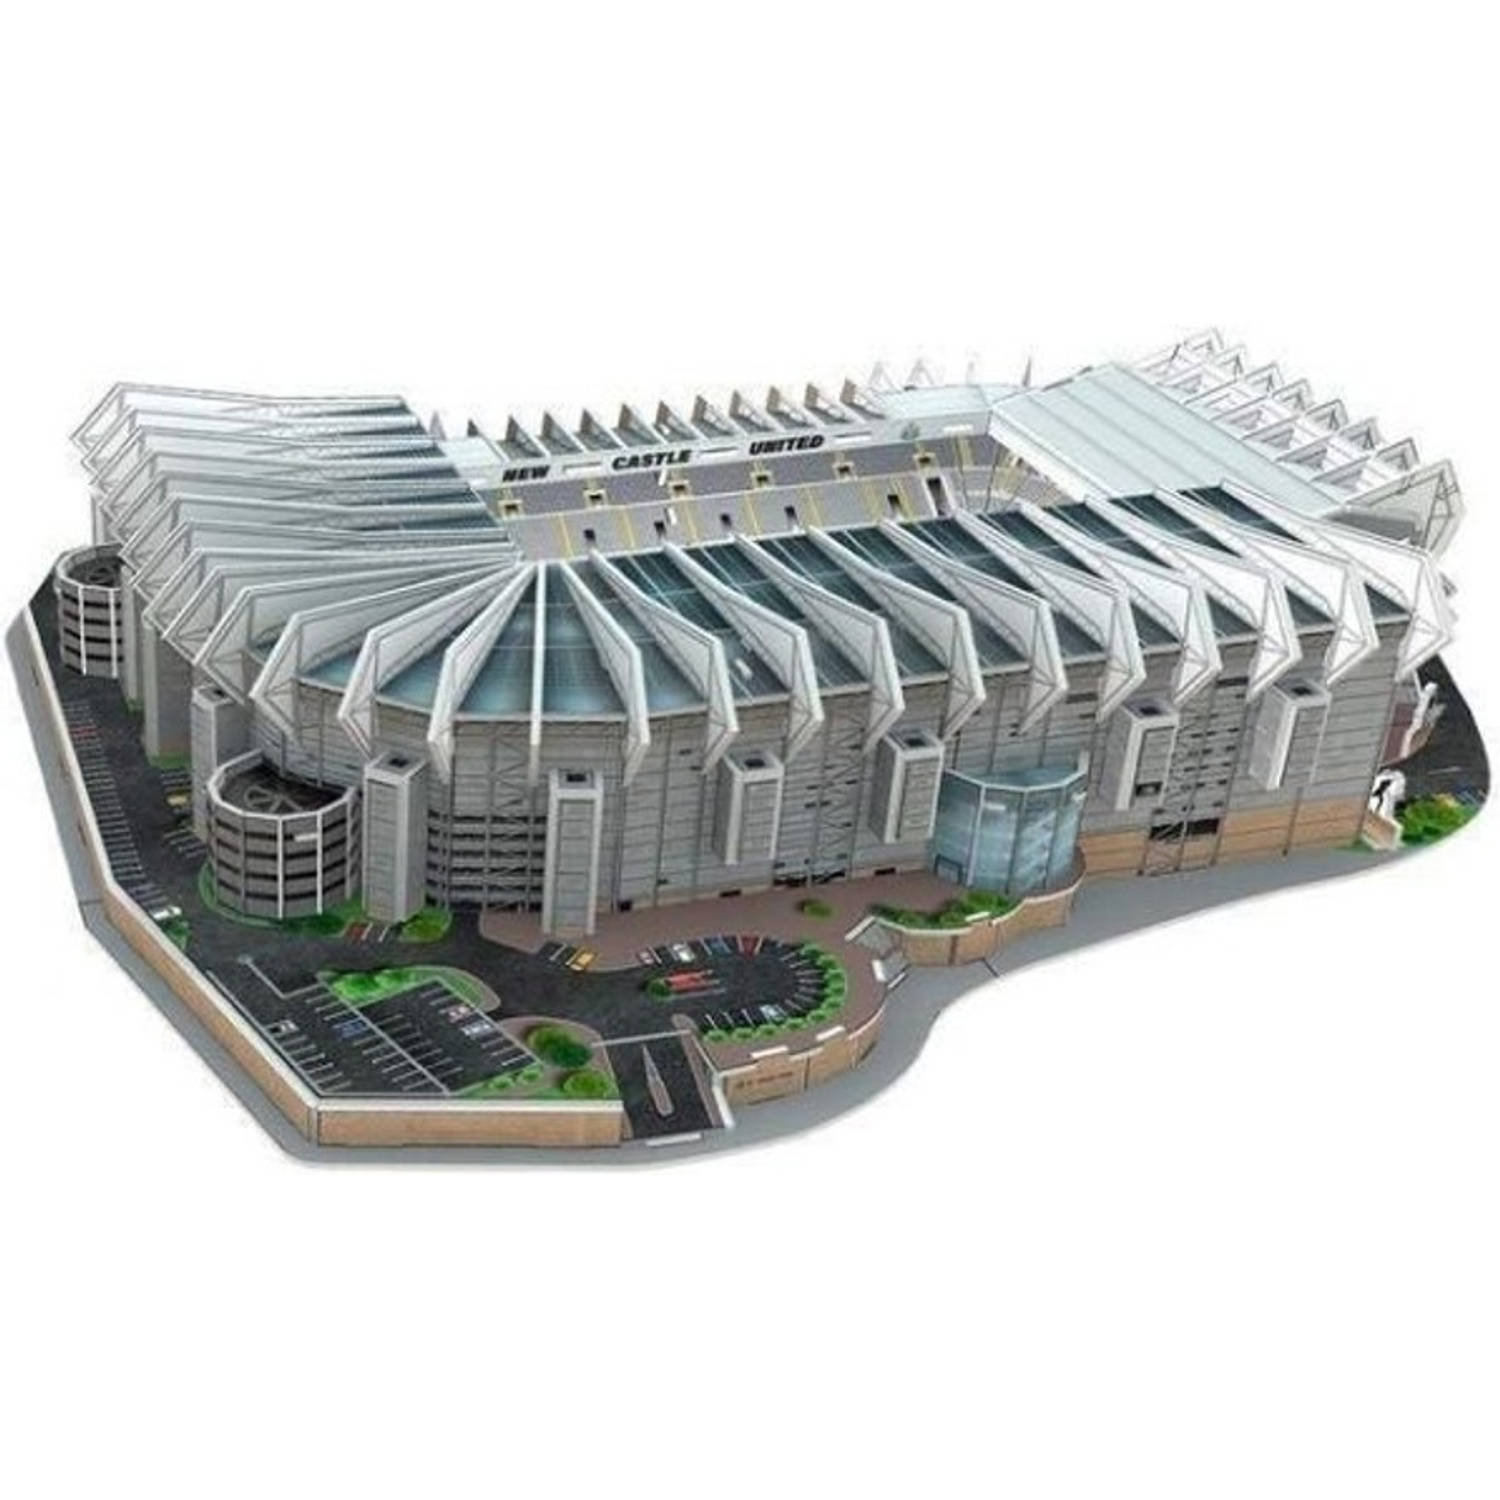 Nanostad Newcastle United 3D-puzzel St James Park 140-delig